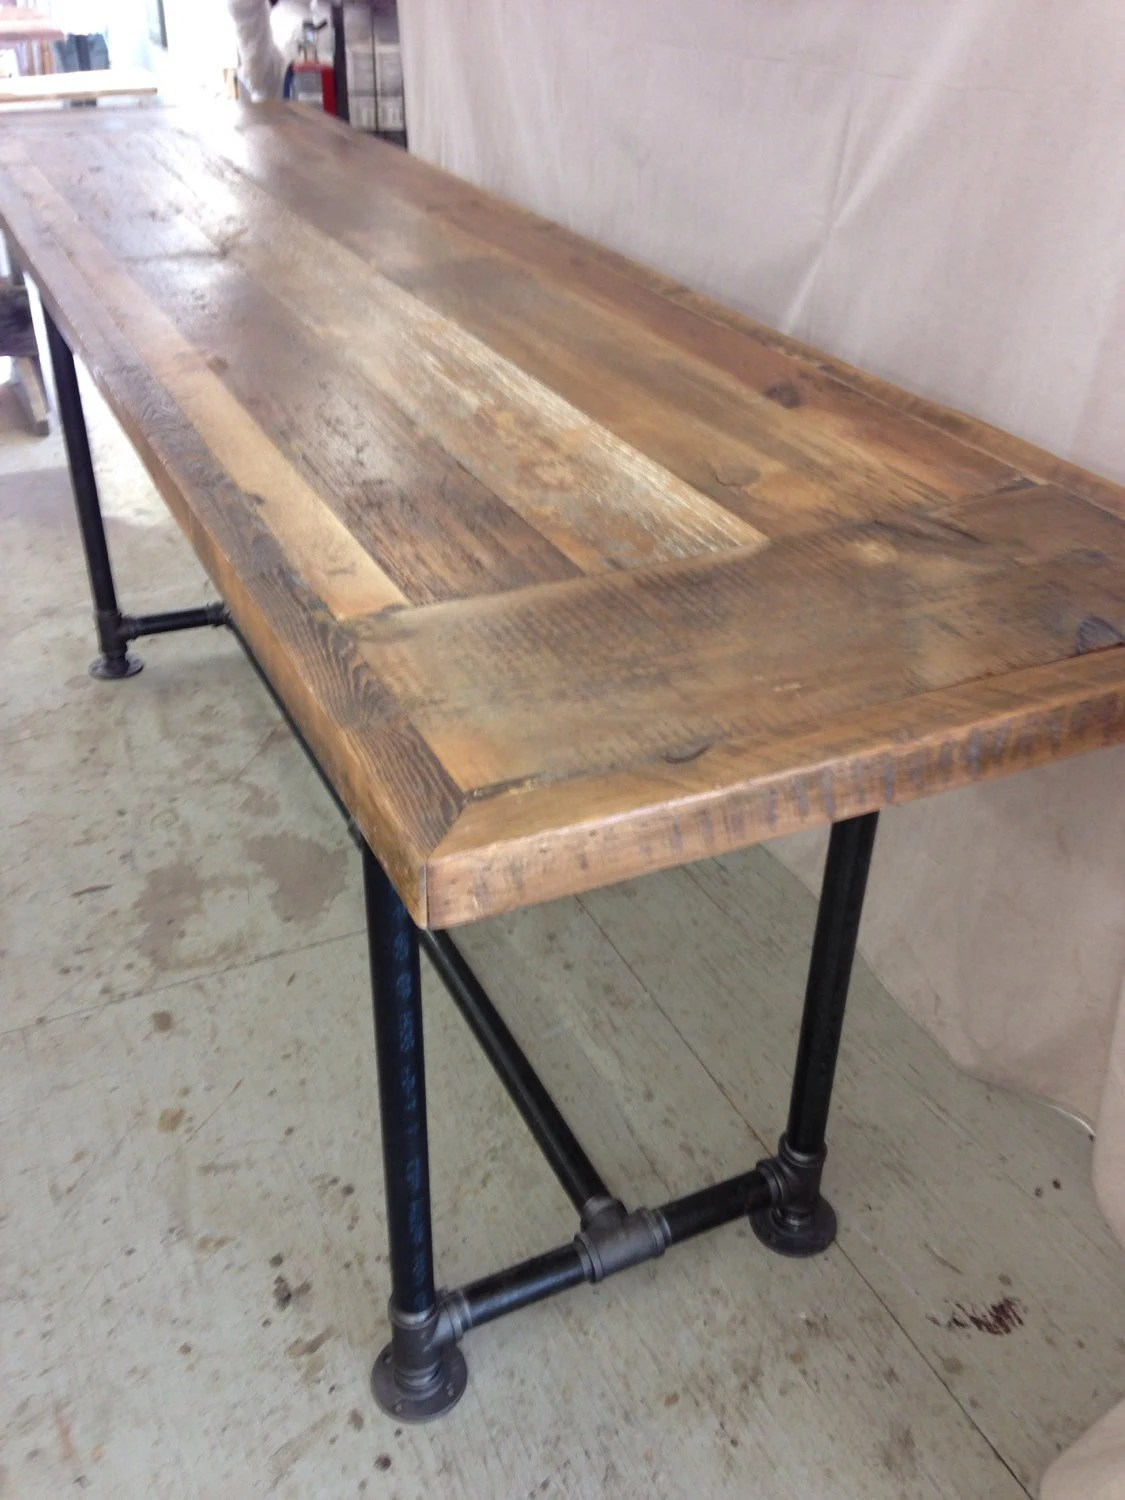 rectangle kitchen table with bench light over sink reclaimed wood dining modern industrial 8 ft x 3